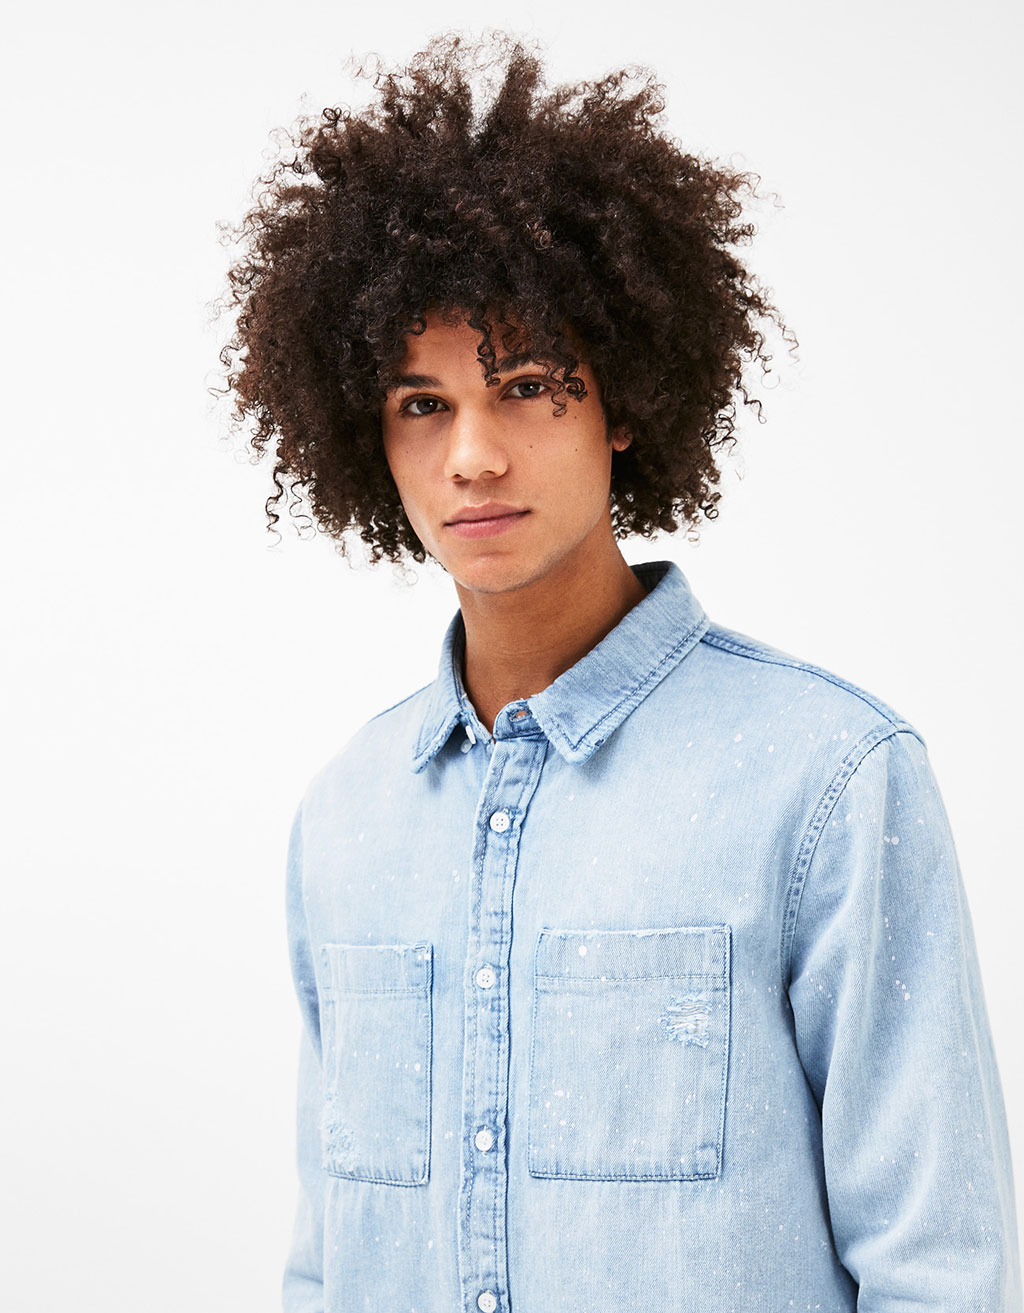 Denim shirt with ripped pockets